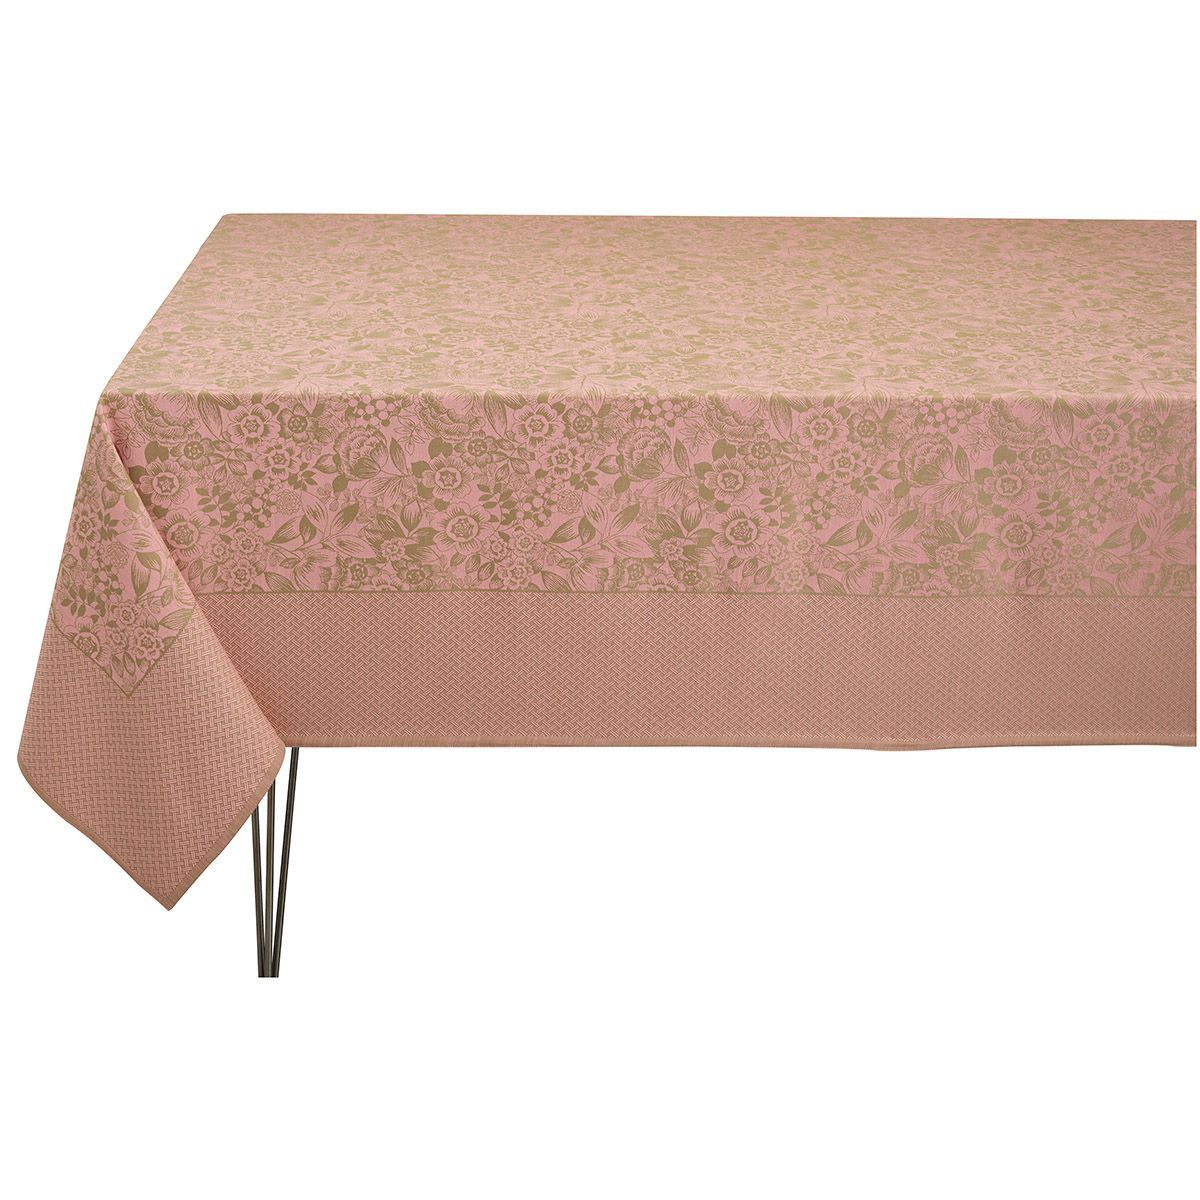 Osmose Aspen Coated Tablecloths